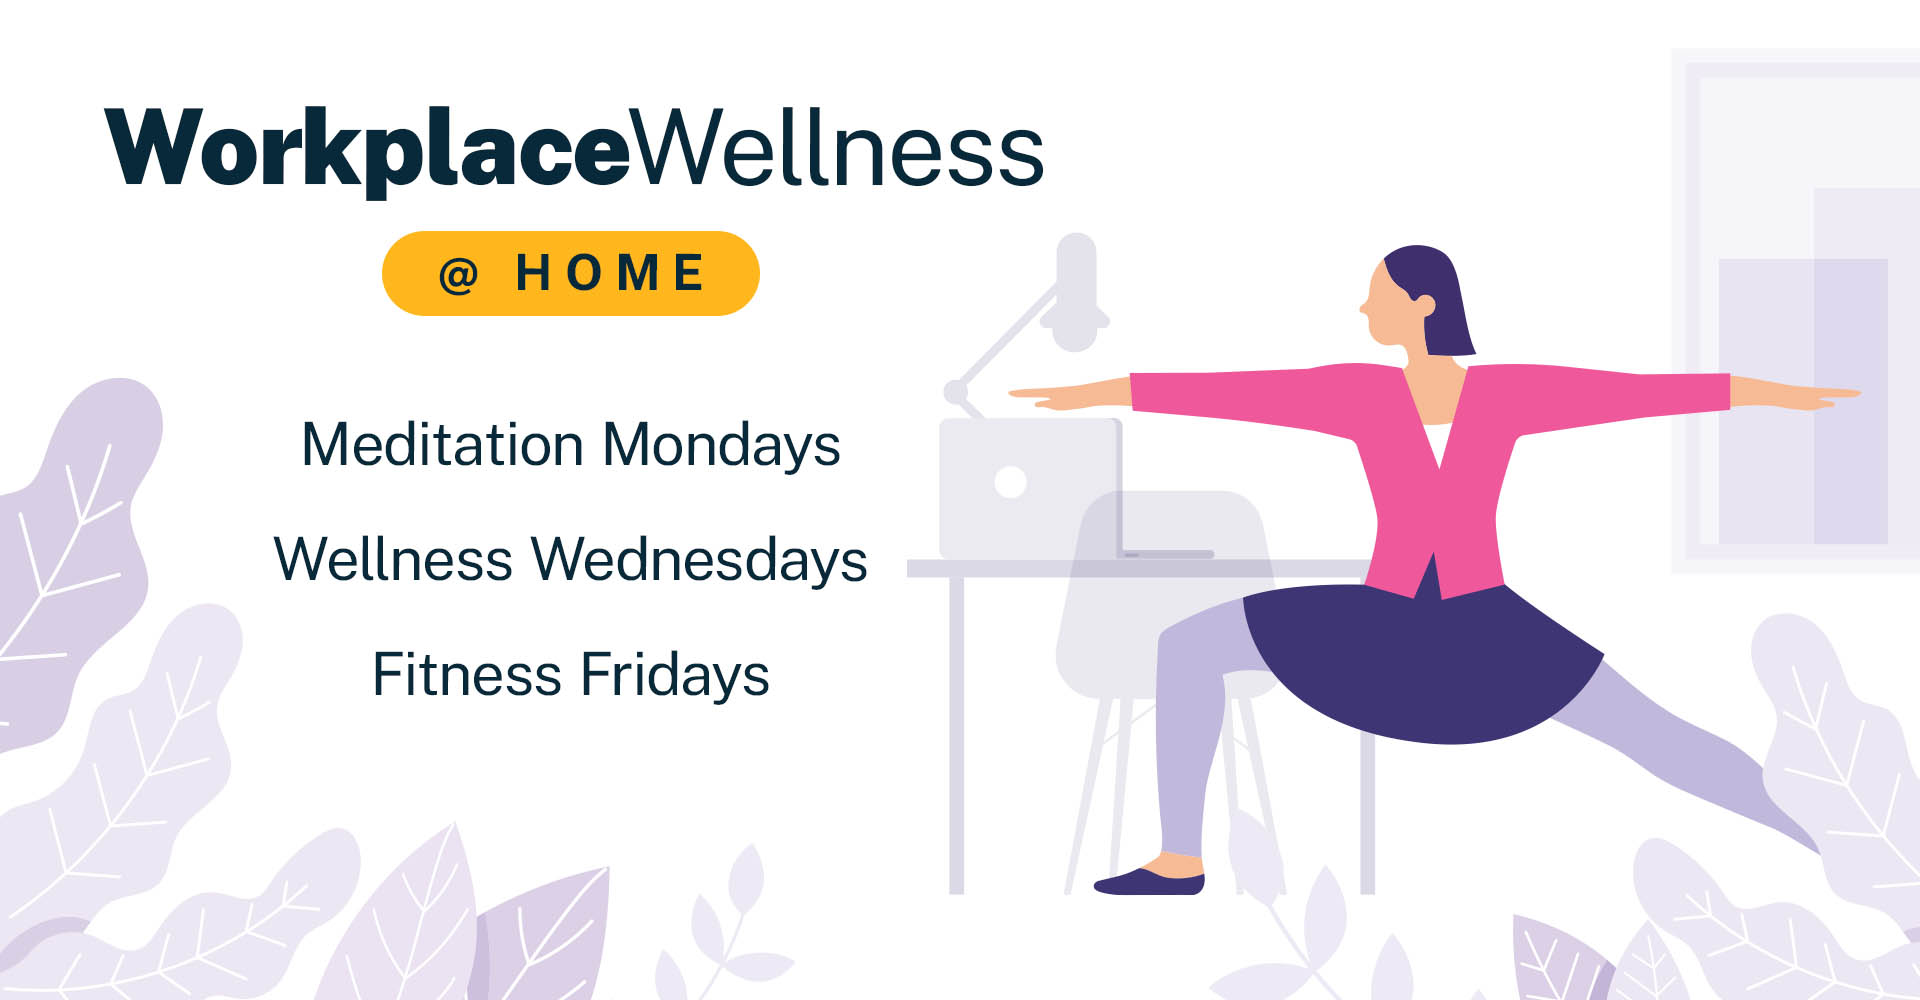 WorkplaceWellness at home